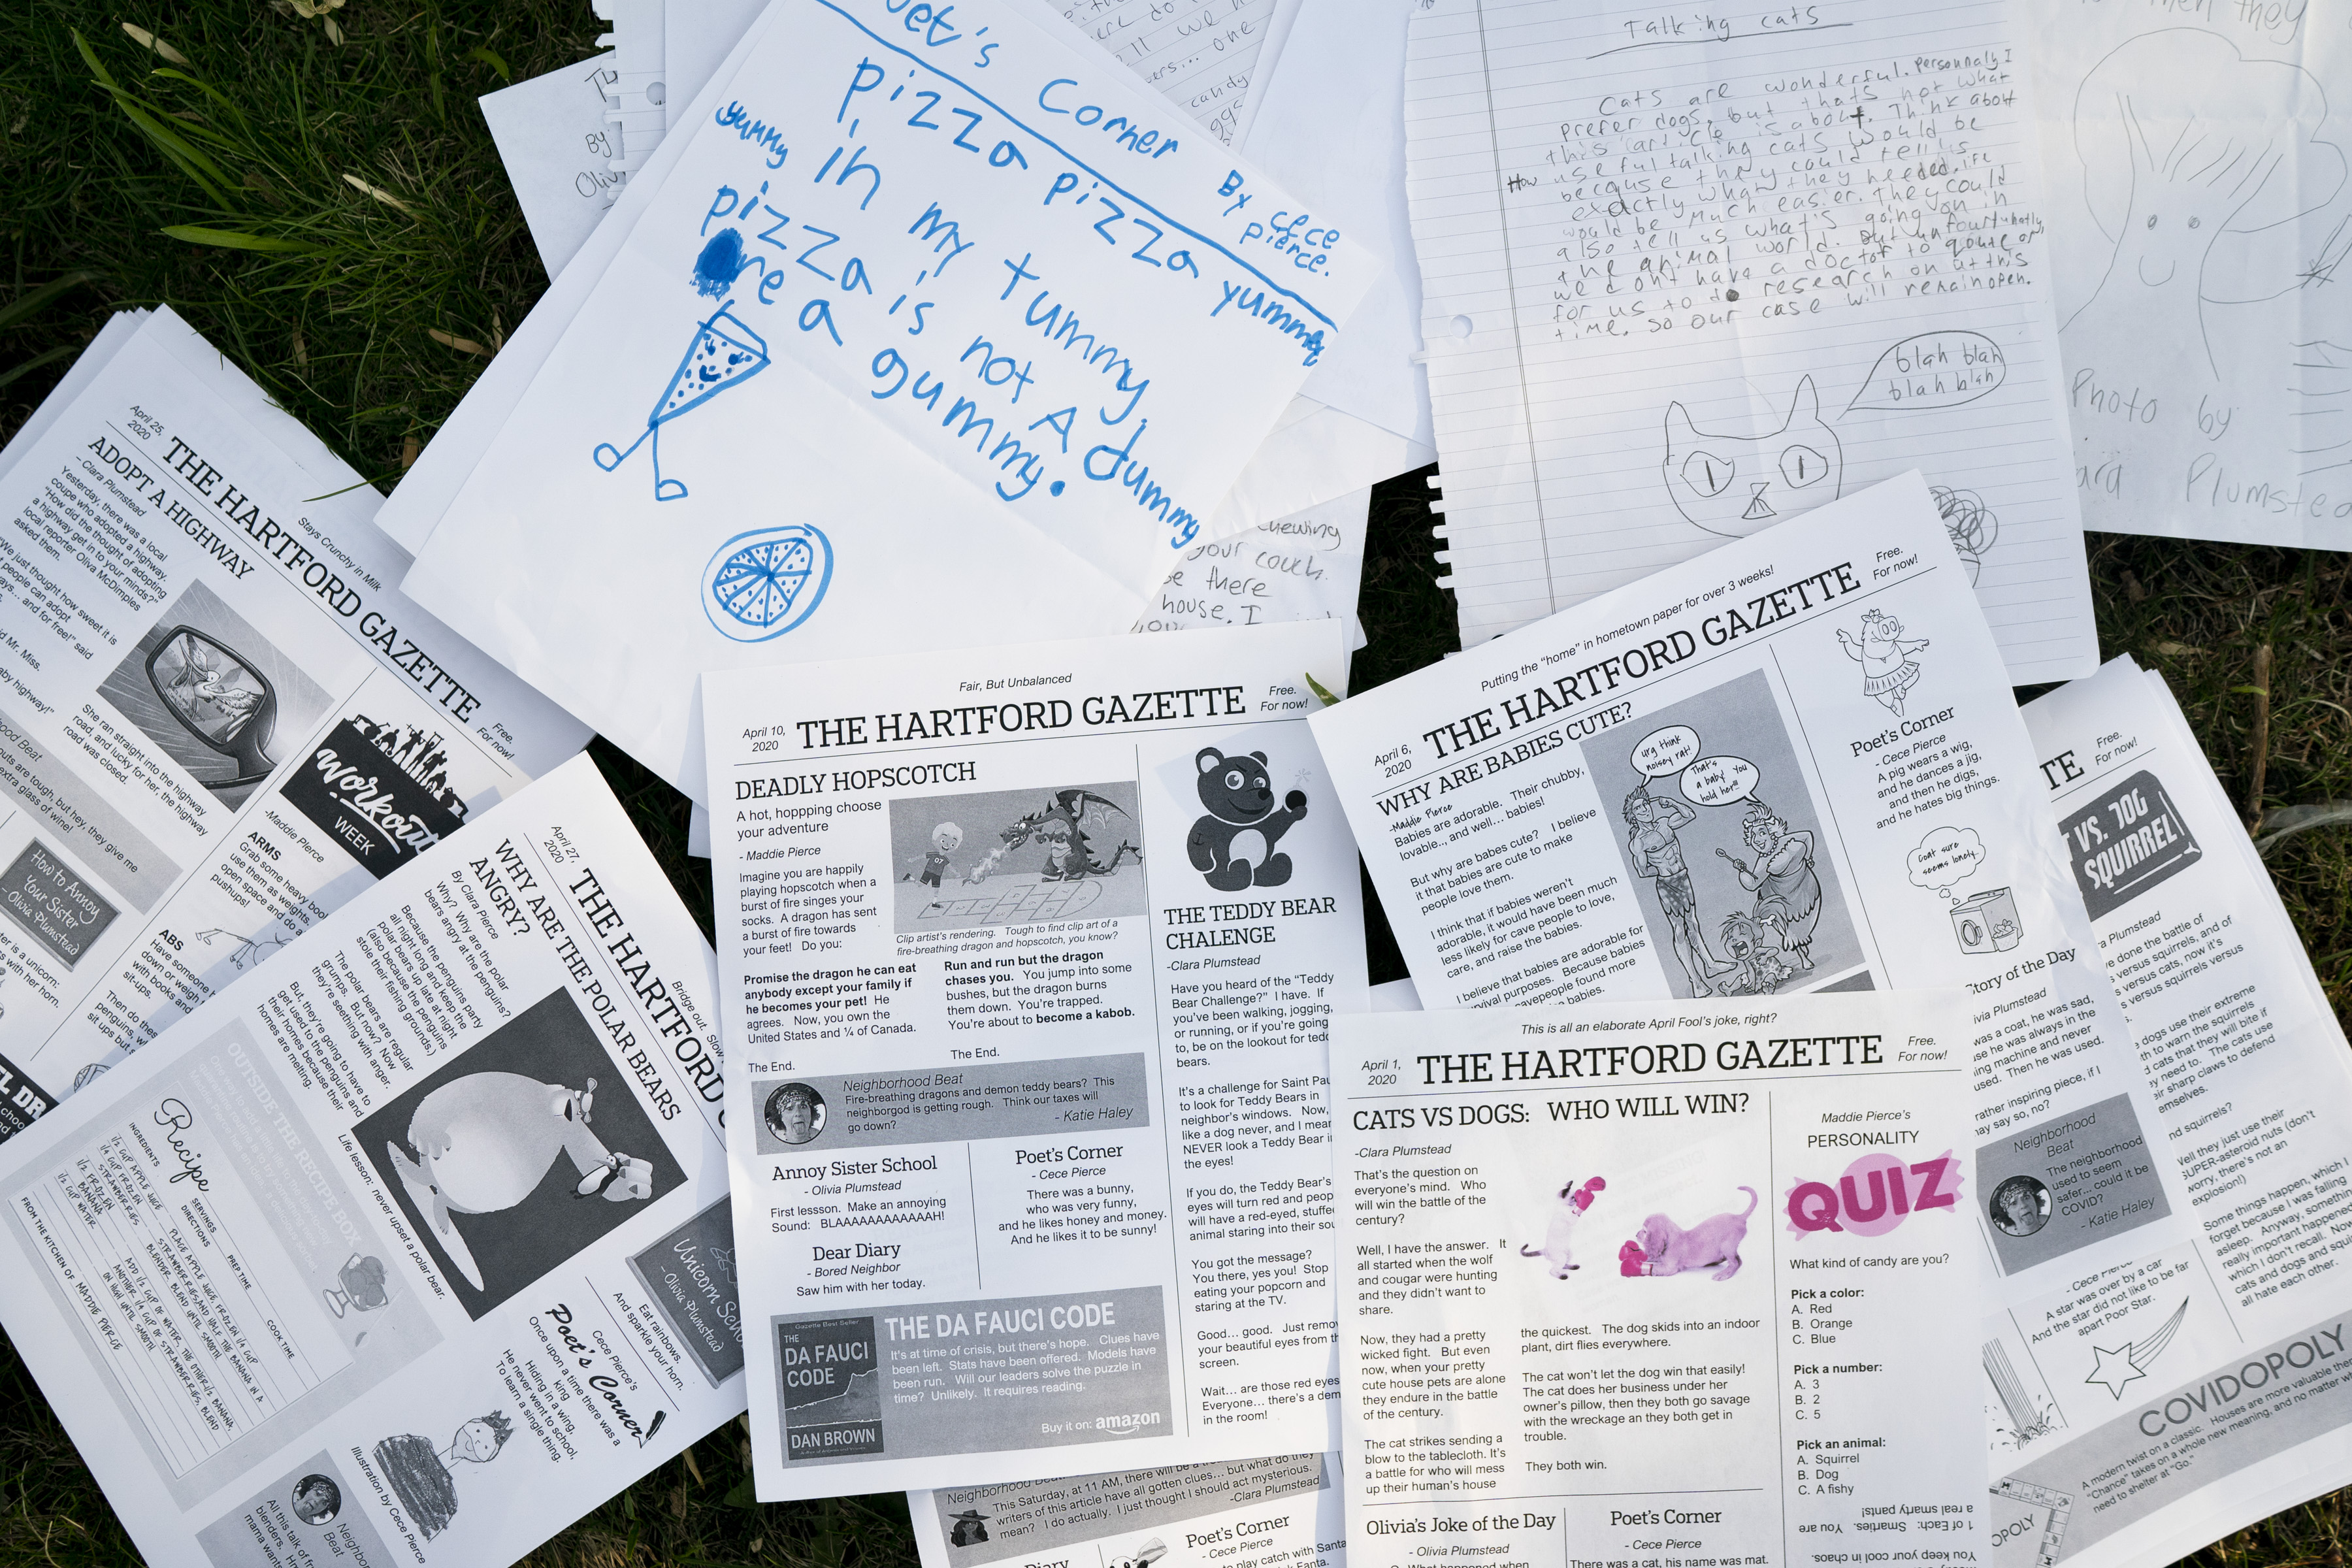 Sisters Cece, 7, and Maddie Pierce, 13, and sisters Clara, 10, and Olivia Plumstead start by writing each section by hand and their neighbor (Sean Haley who works at the Star Tribune) lays it out in a newspaper style.